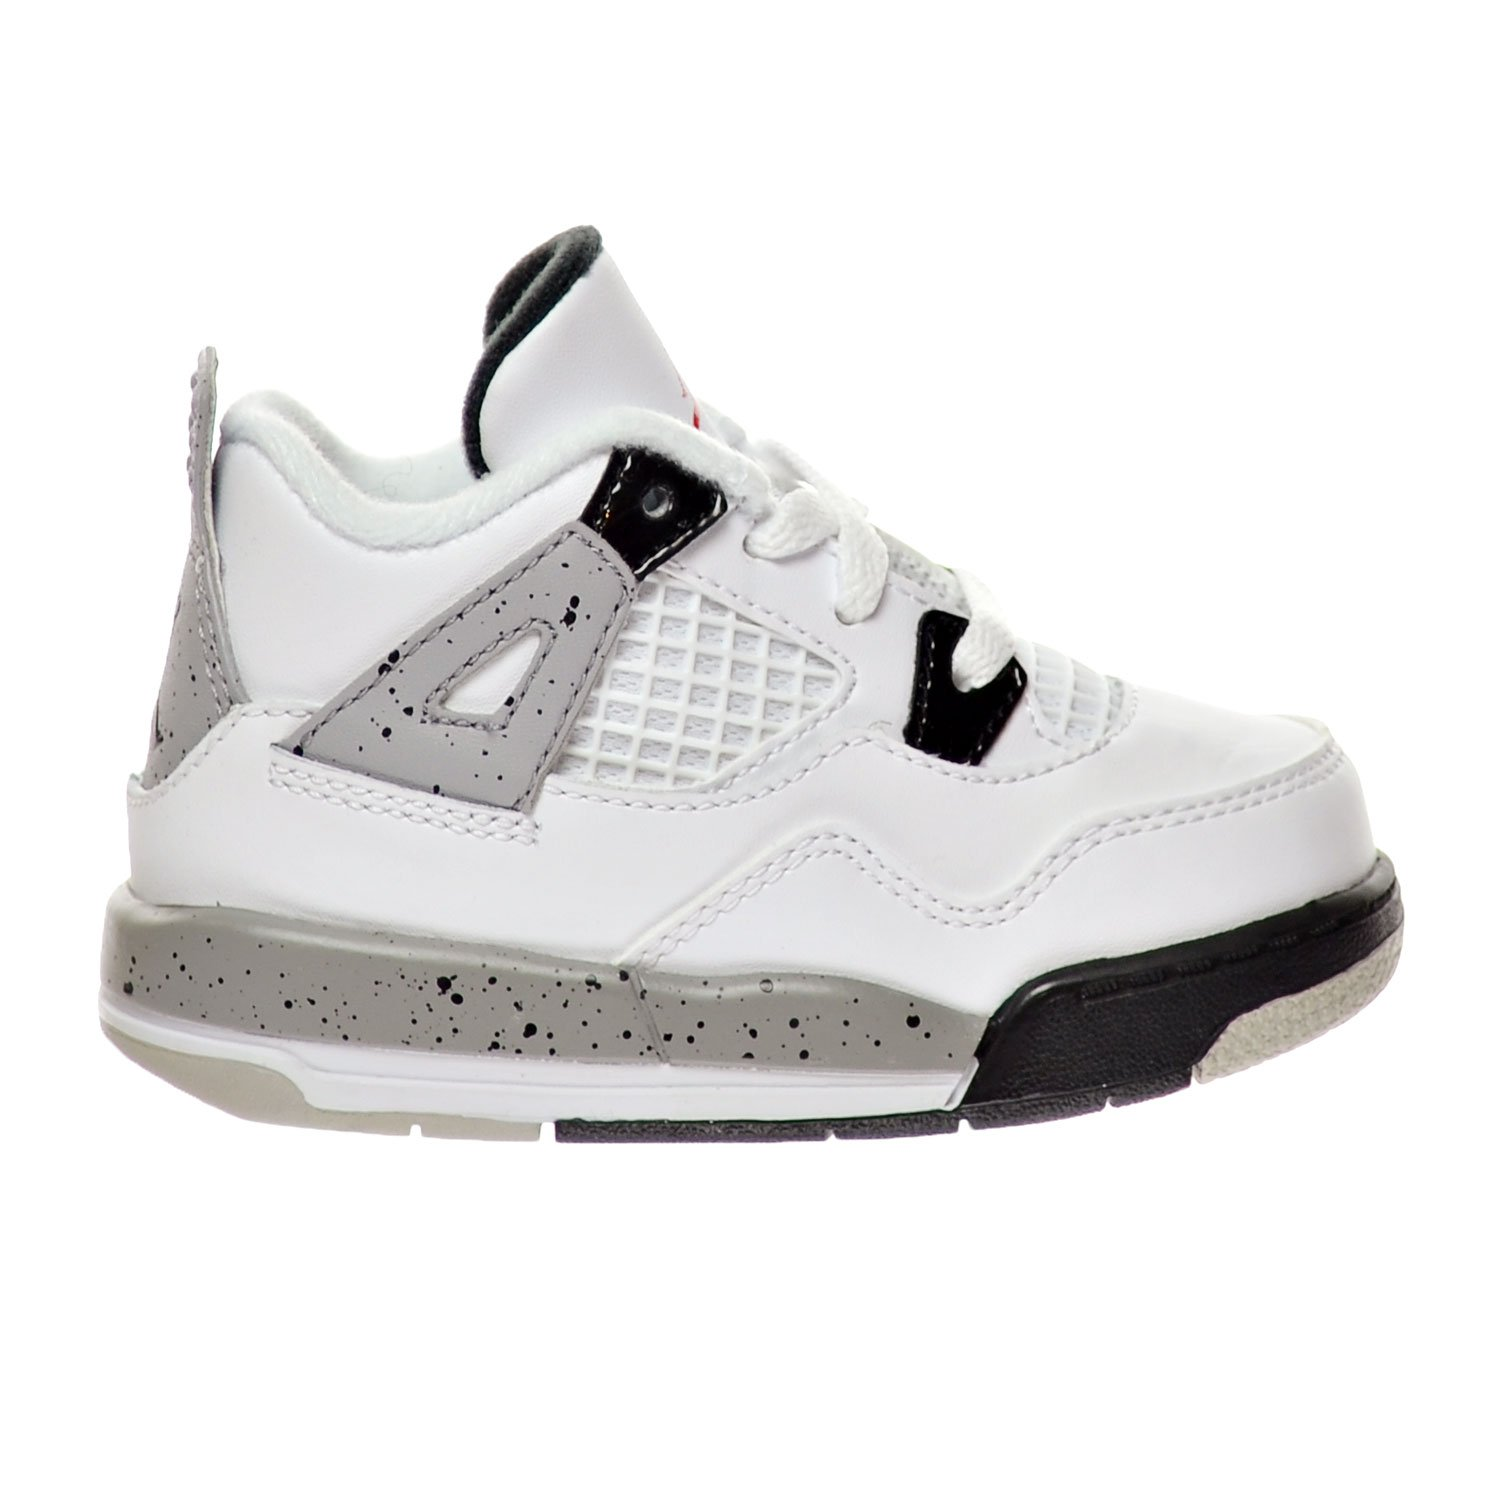 88541655389 ... netherlands amazon jordan 4 retro bp cement toddlers shoes white fire  red black matte silver 308500